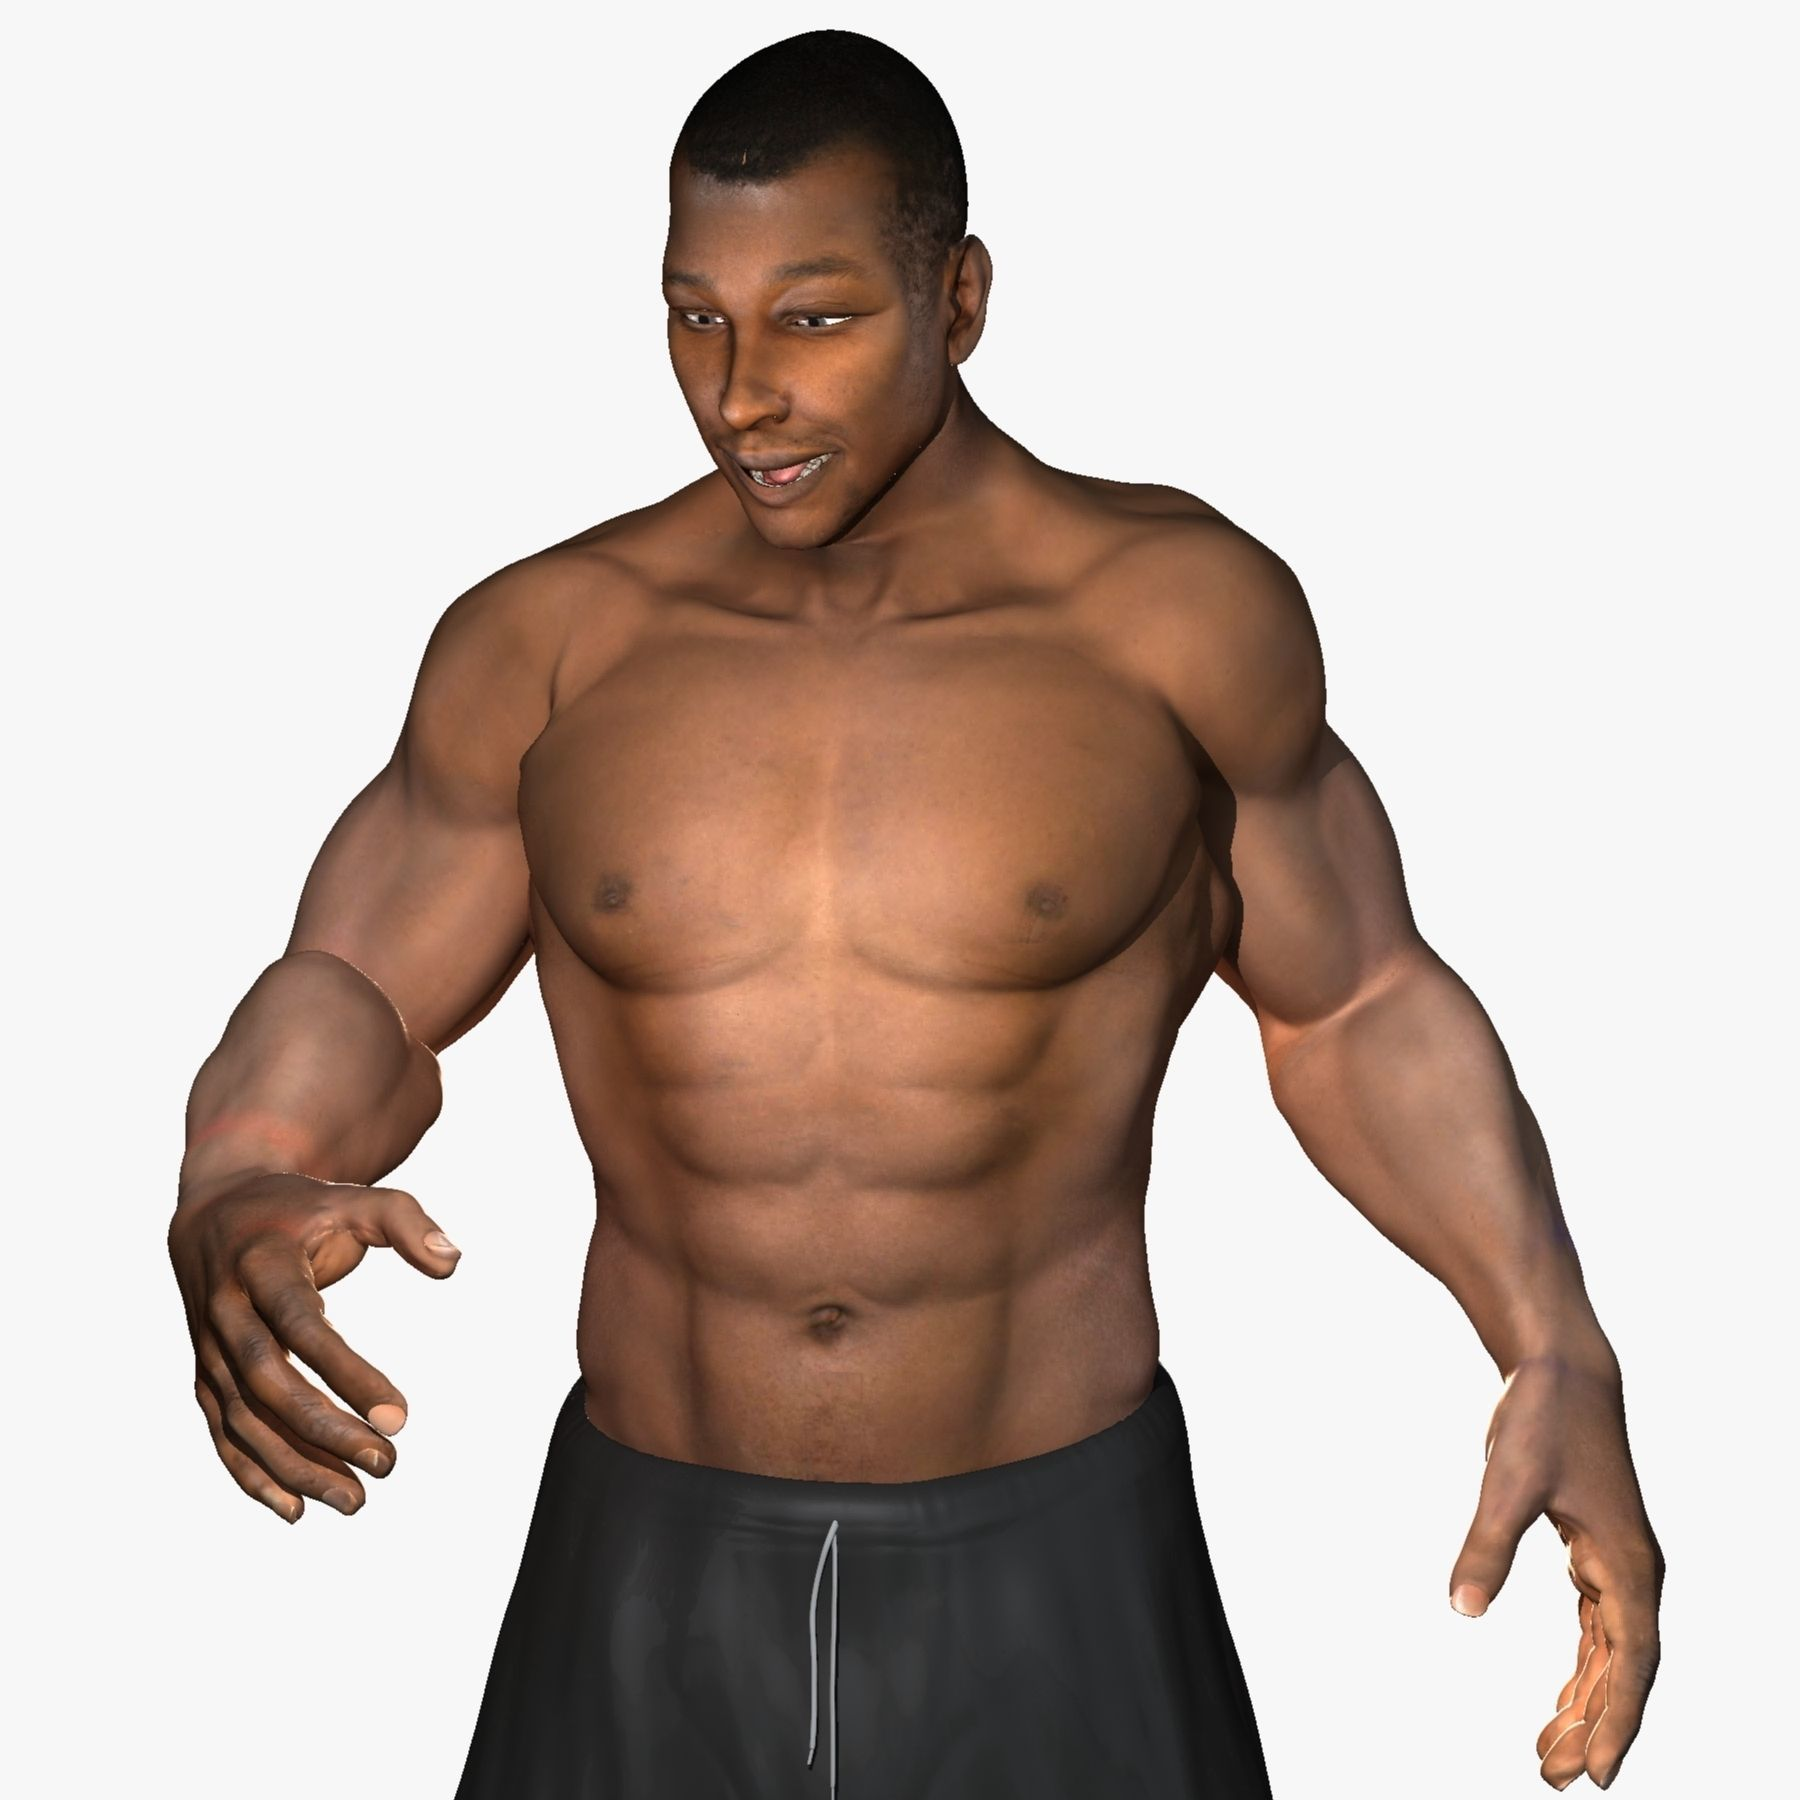 African American Male Muscular Rigged